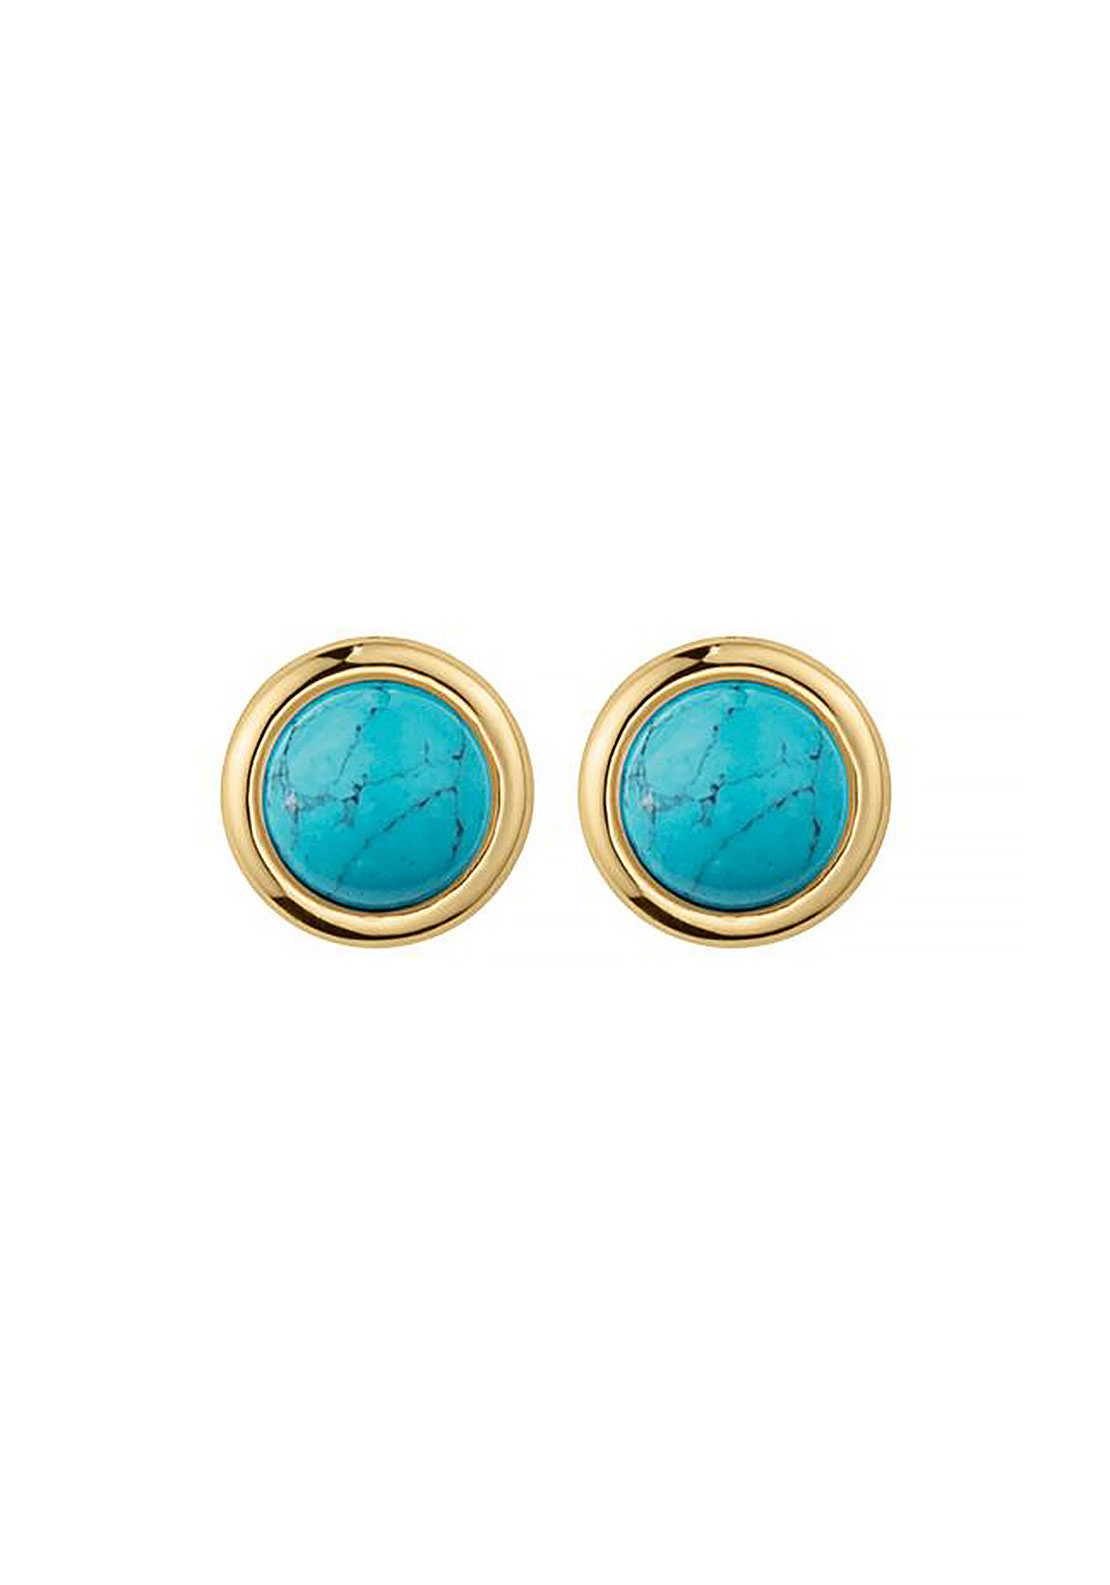 Dyrberg Kern Fina Earrings, Turquoise & Gold